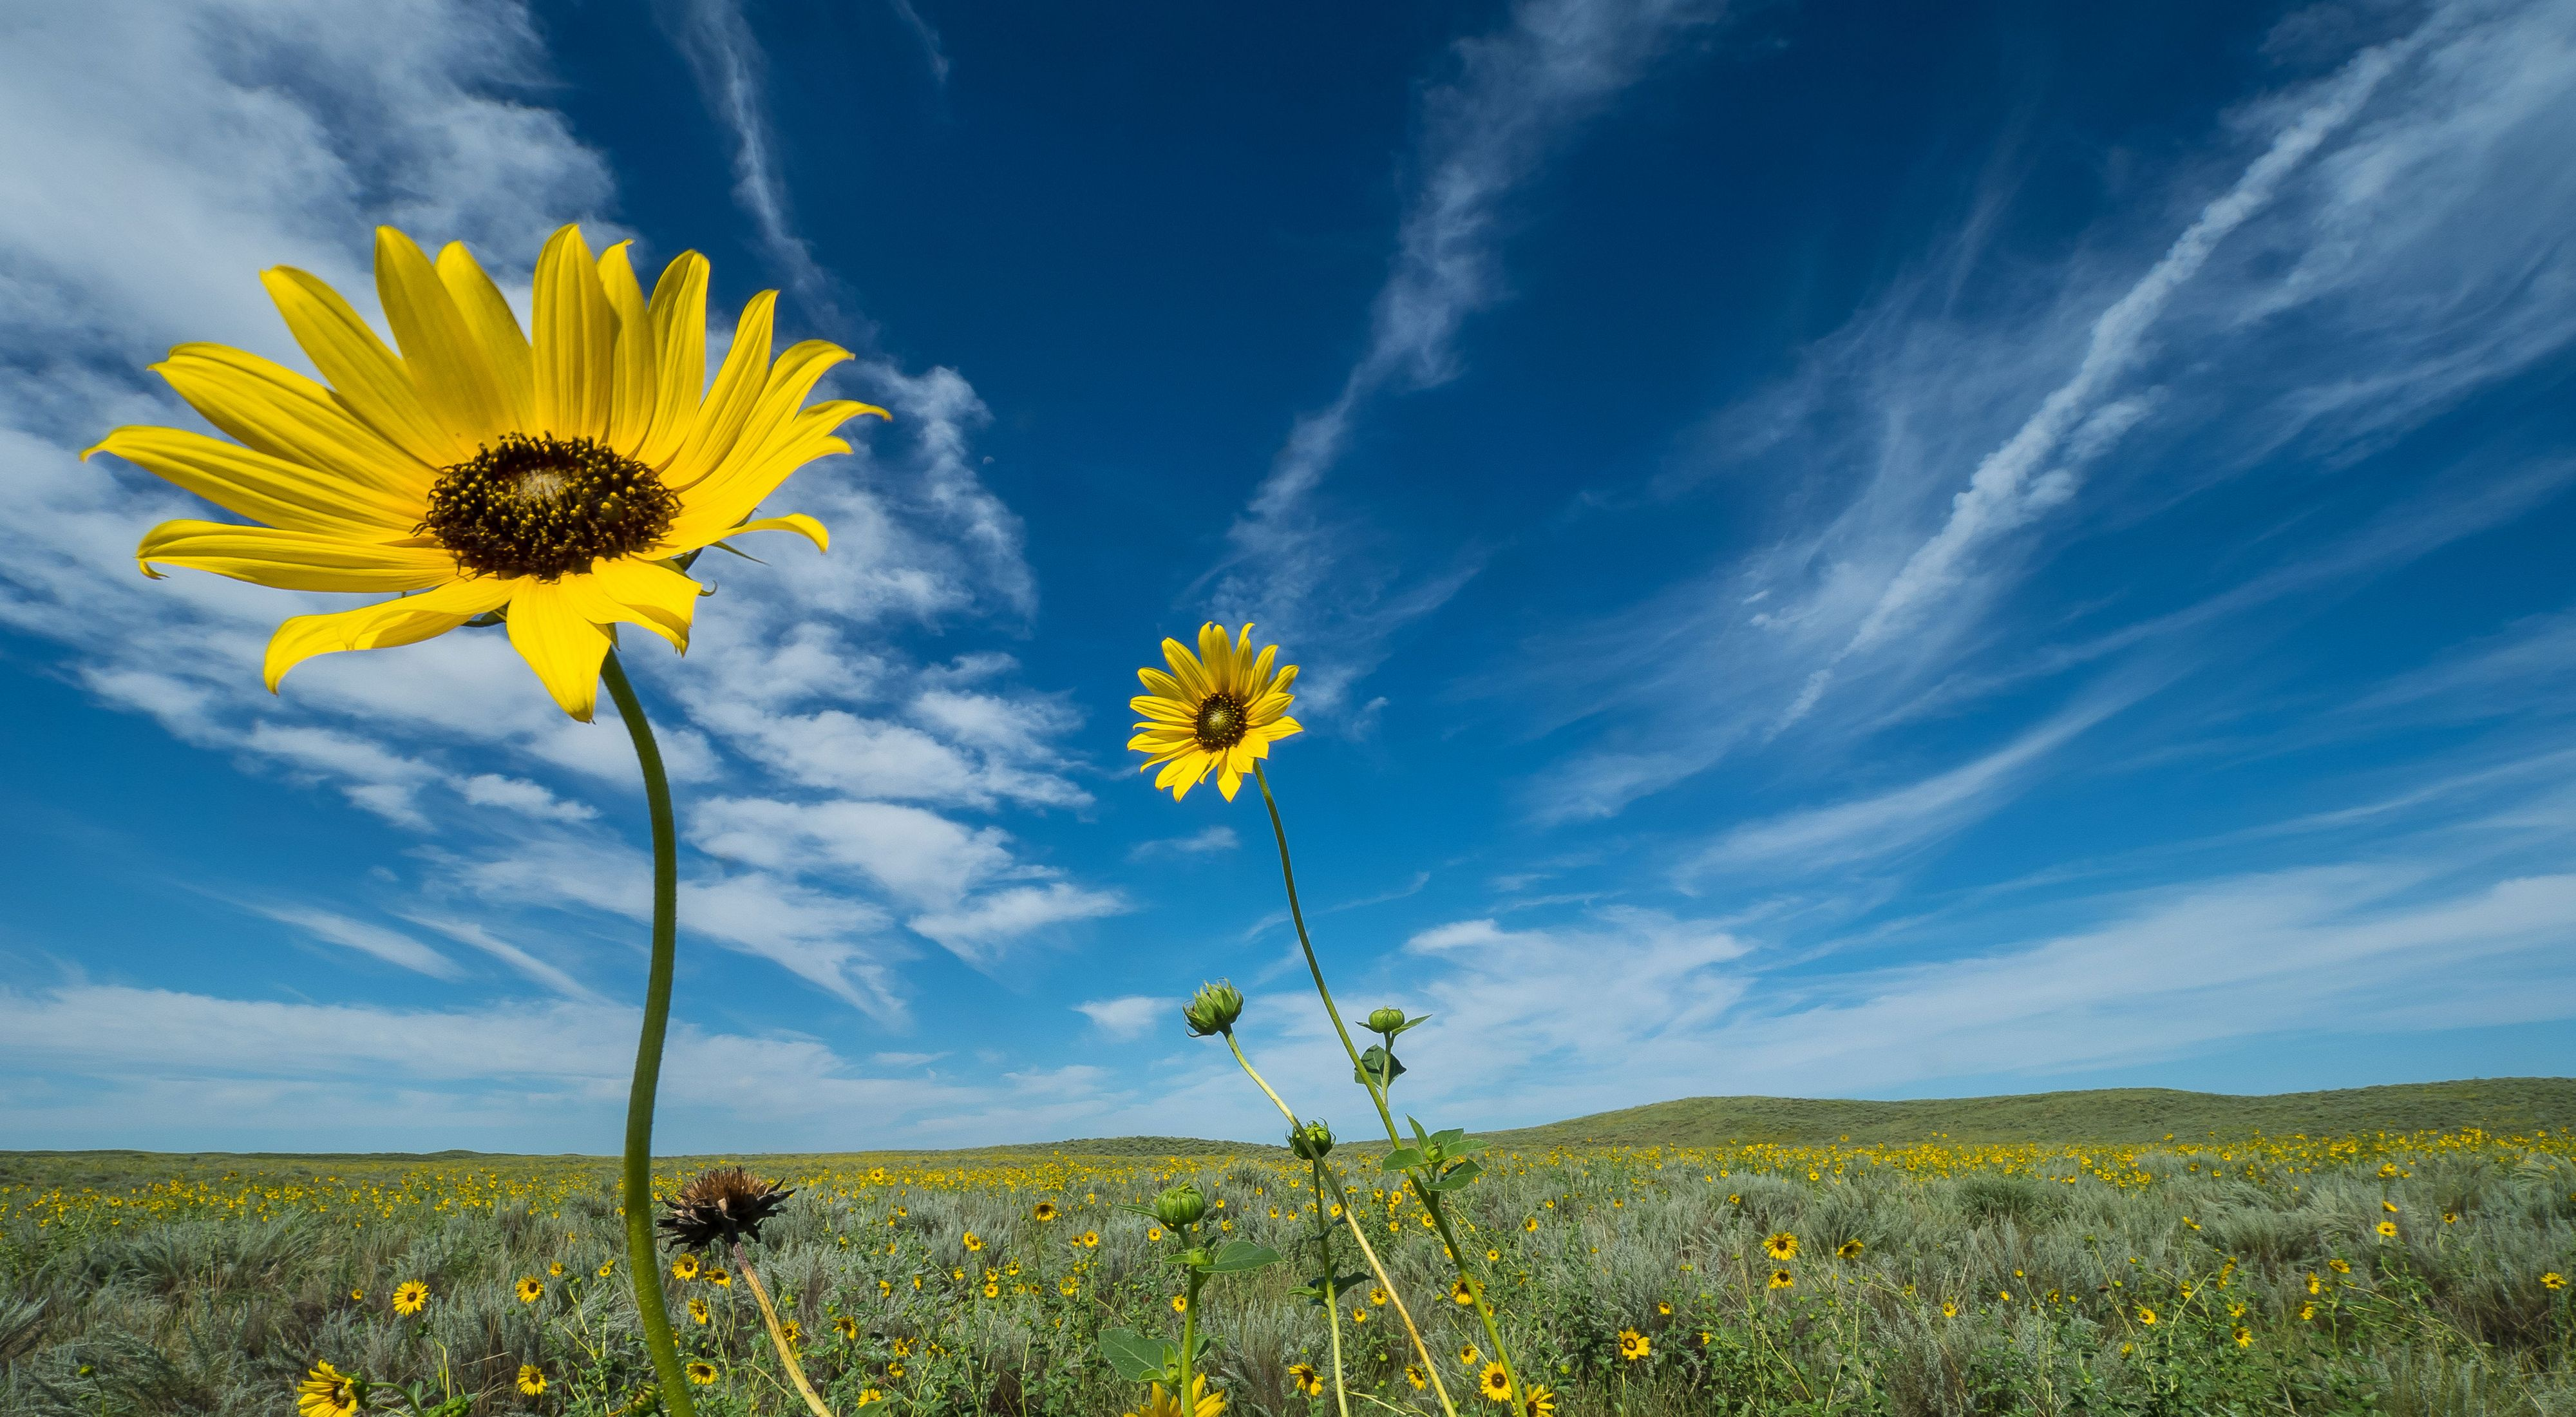 Yellow flowers growing in a field of lush green sage grass with a bright blue sky streaked with white clouds above.